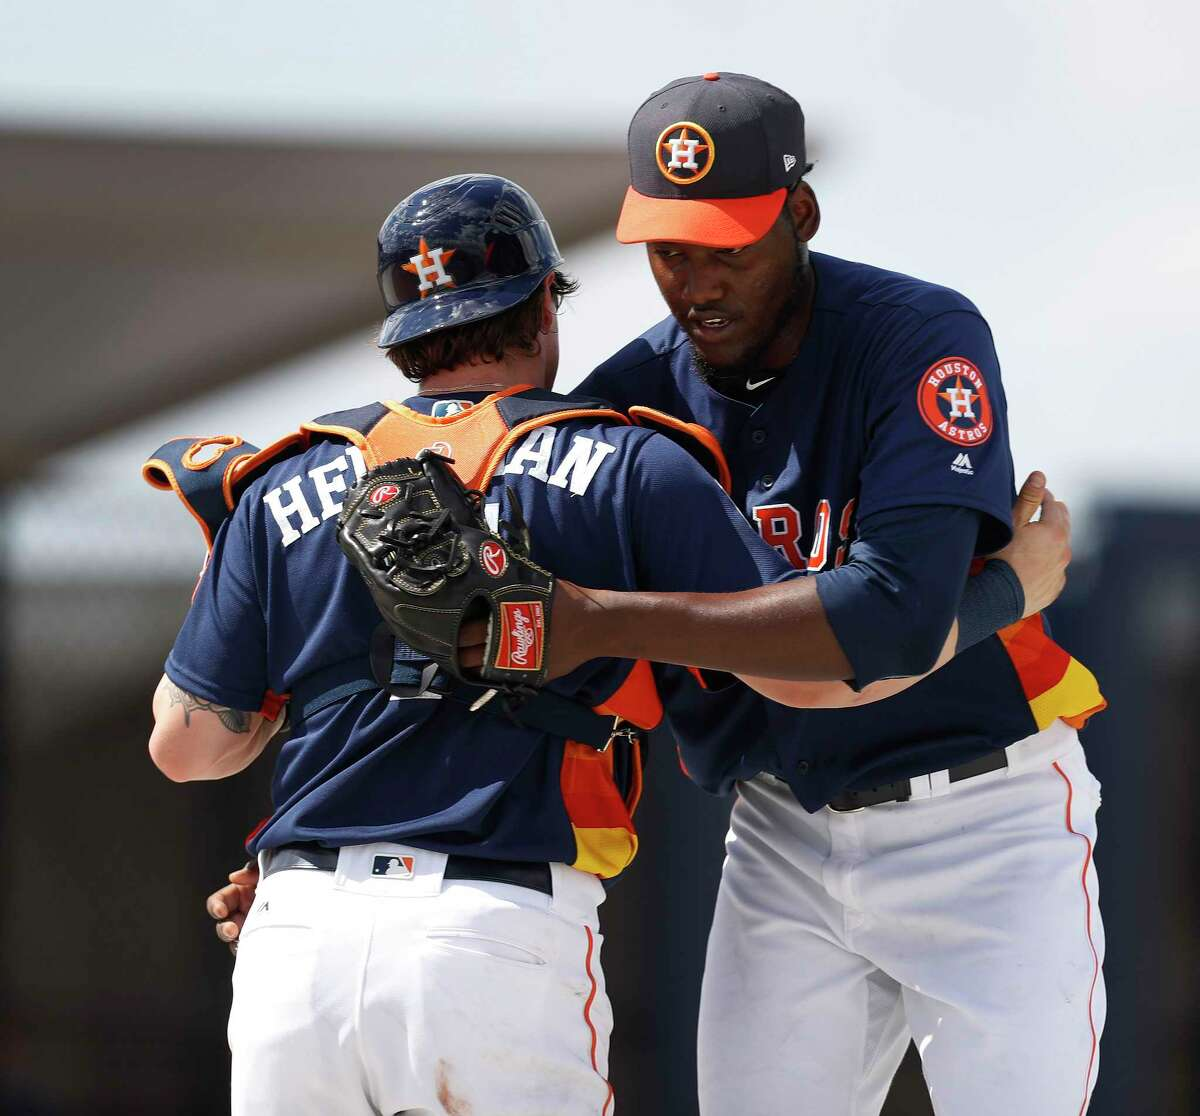 Houston Astros catcher Tyler Heineman (71) hugs pitcher David Paulino (63) after Paulino threw a live batting practice during spring training at The Ballpark of the Palm Beaches, in West Palm Beach, Florida, Monday, February 20, 2017.